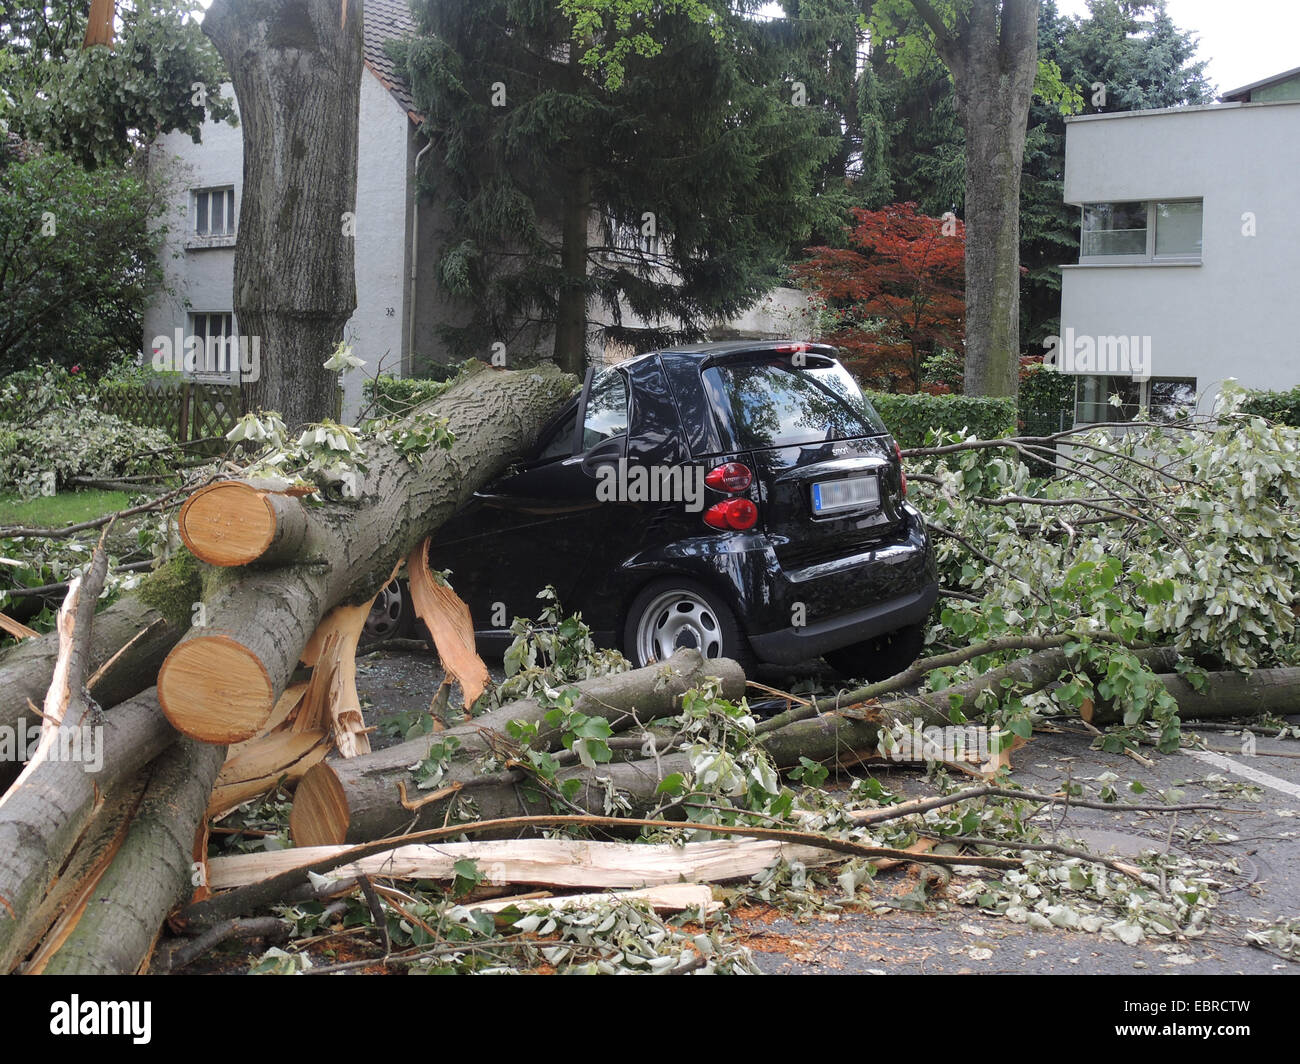 tree fallen on parked car, damages by storm front Ela at 2014-06-09, Germany, North Rhine-Westphalia, Ruhr Area, - Stock Image